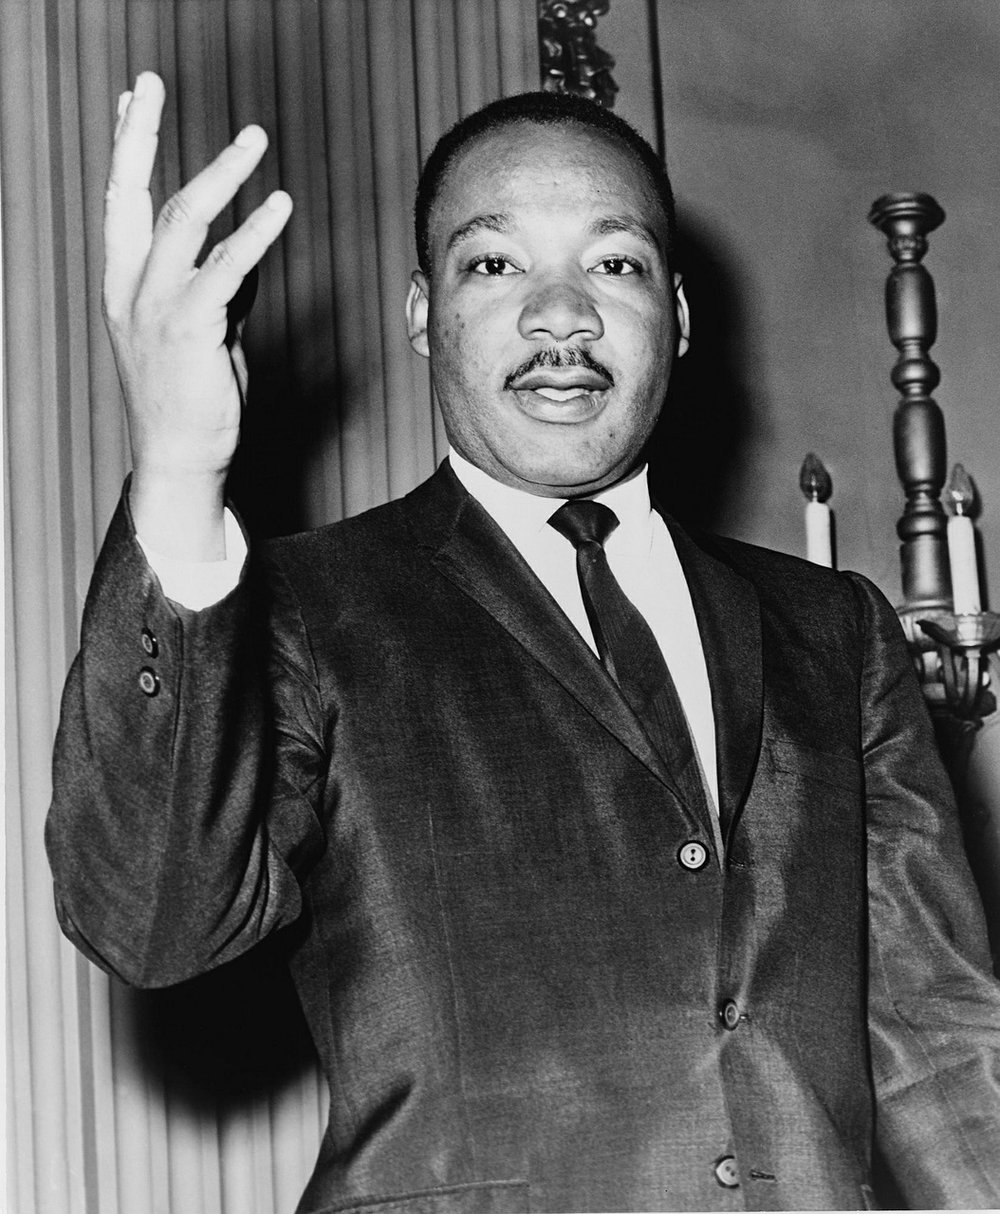 martin-luther-king-jr-393870_1280.jpg